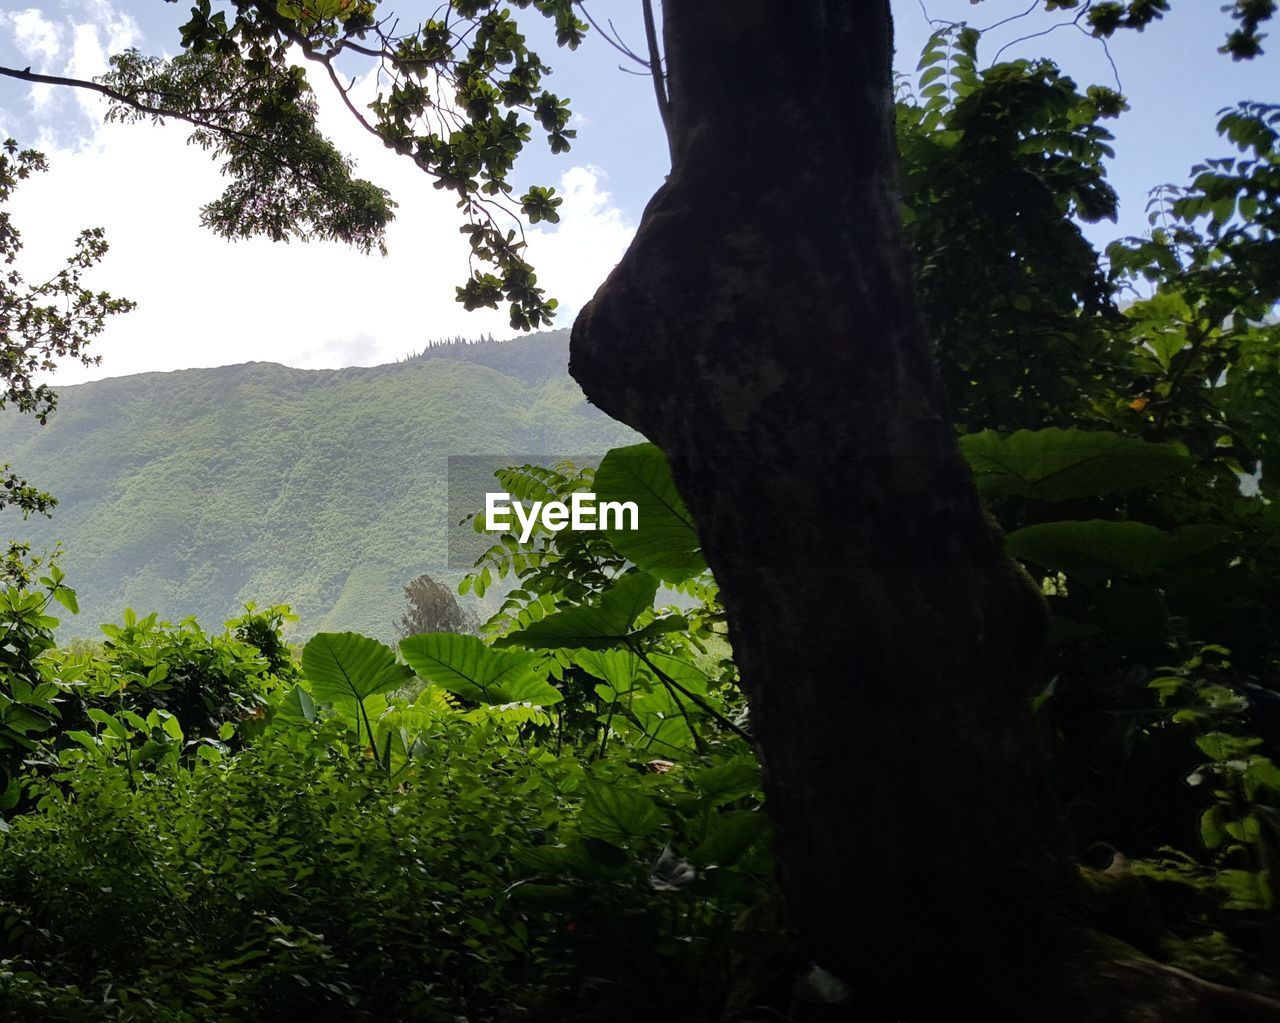 tree, plant, nature, growth, environment, outdoors, leaf, plant part, mountain, sky, land, tree trunk, freedom, trunk, green color, tranquility, landscape, forest, positive emotion, beauty in nature, leaves